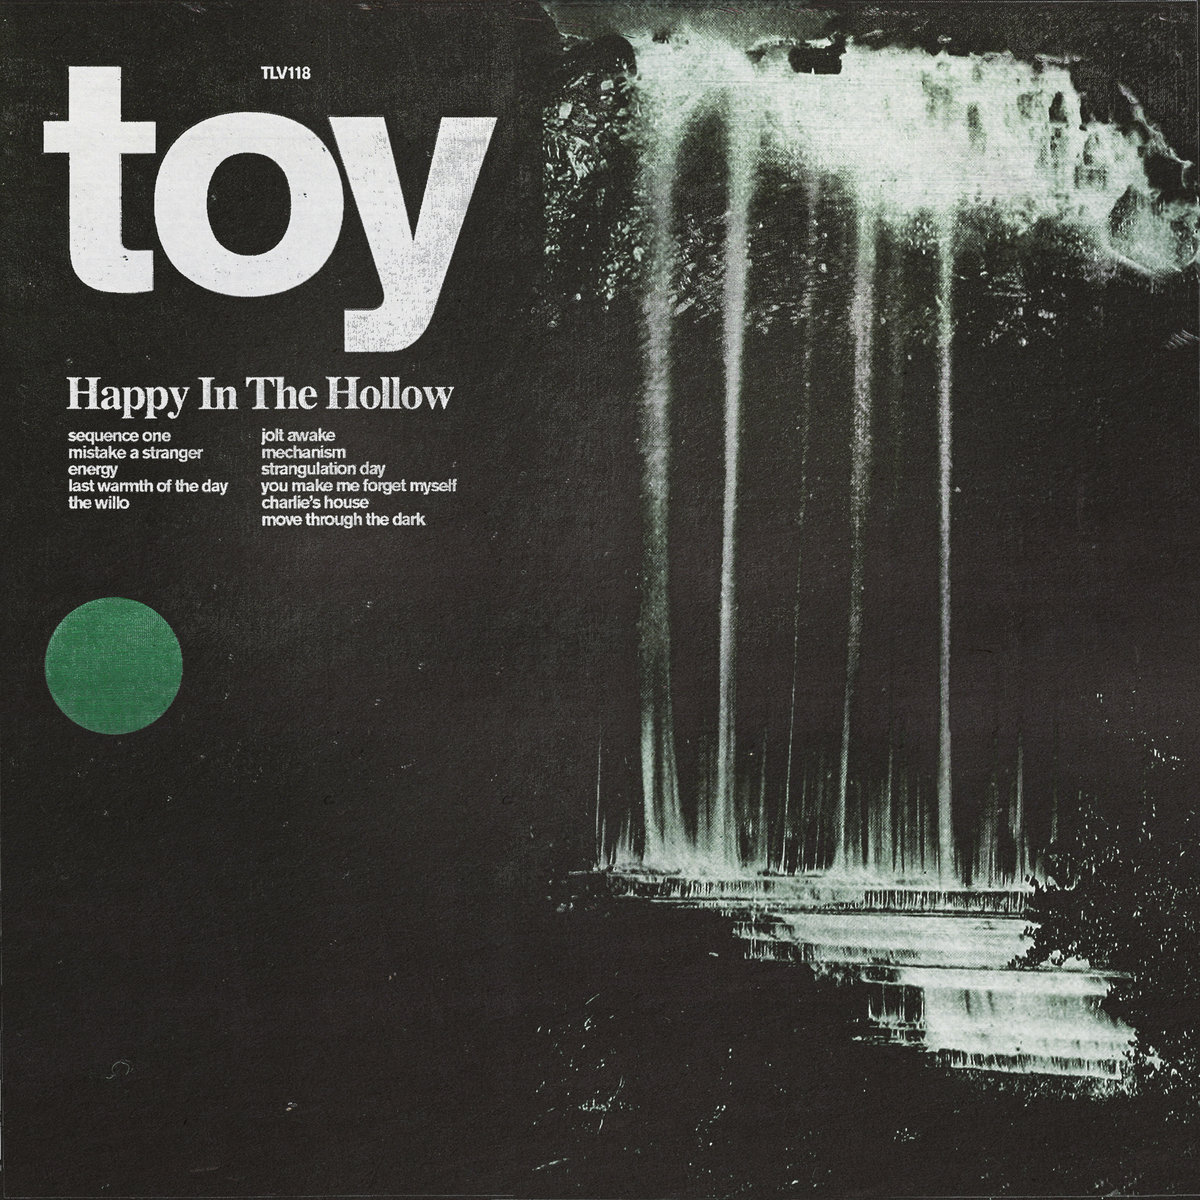 Toy — Happy in the Hollow - Tough Love, Jan. 2019